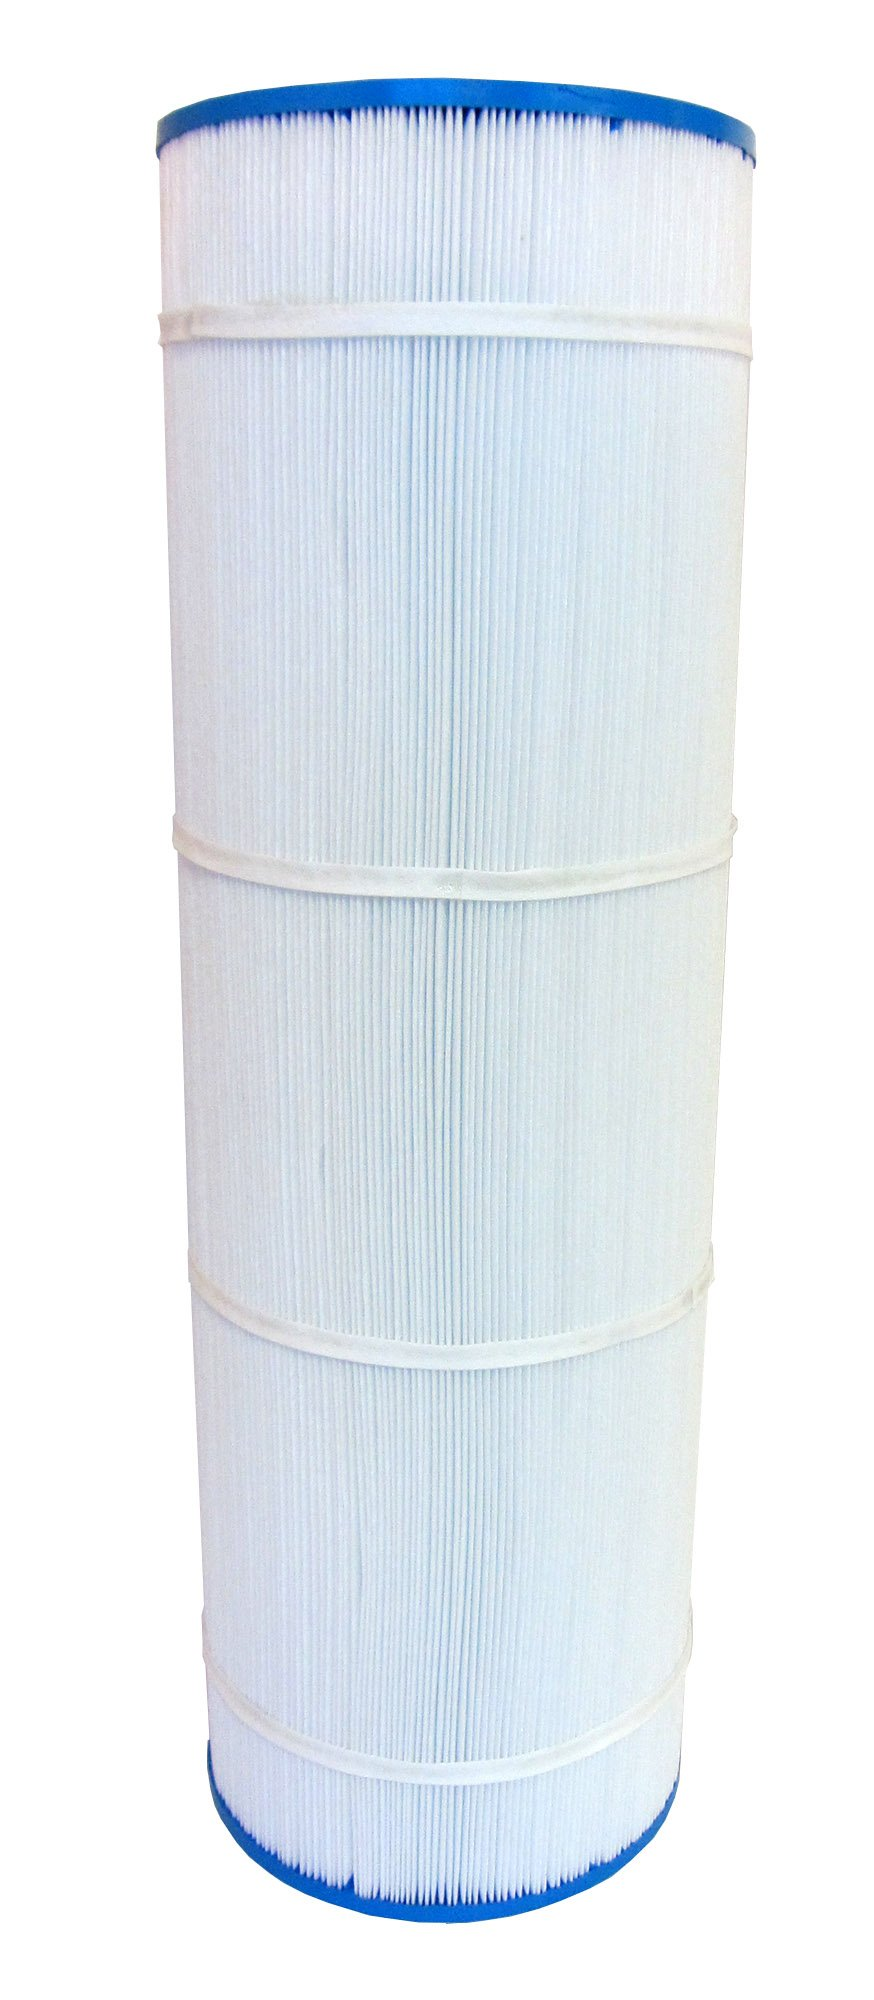 Replacement Cartridge for Cartridge Filter for Pooline Model 73103002 - 150SF